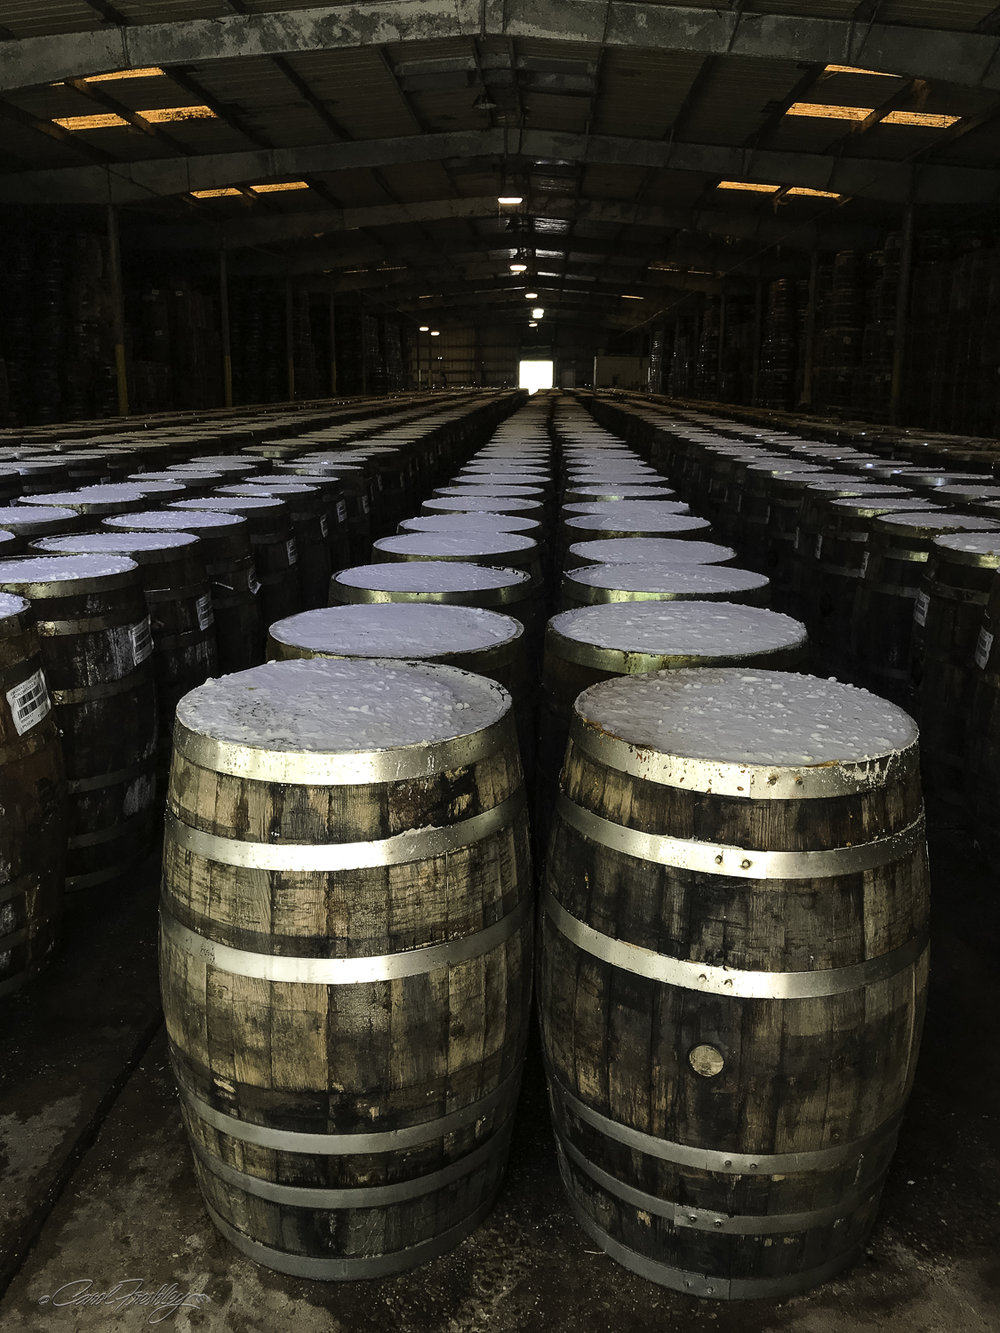 The white oak barrels are sealed and salt placed on top. The mash ferments in the barrels for three years.